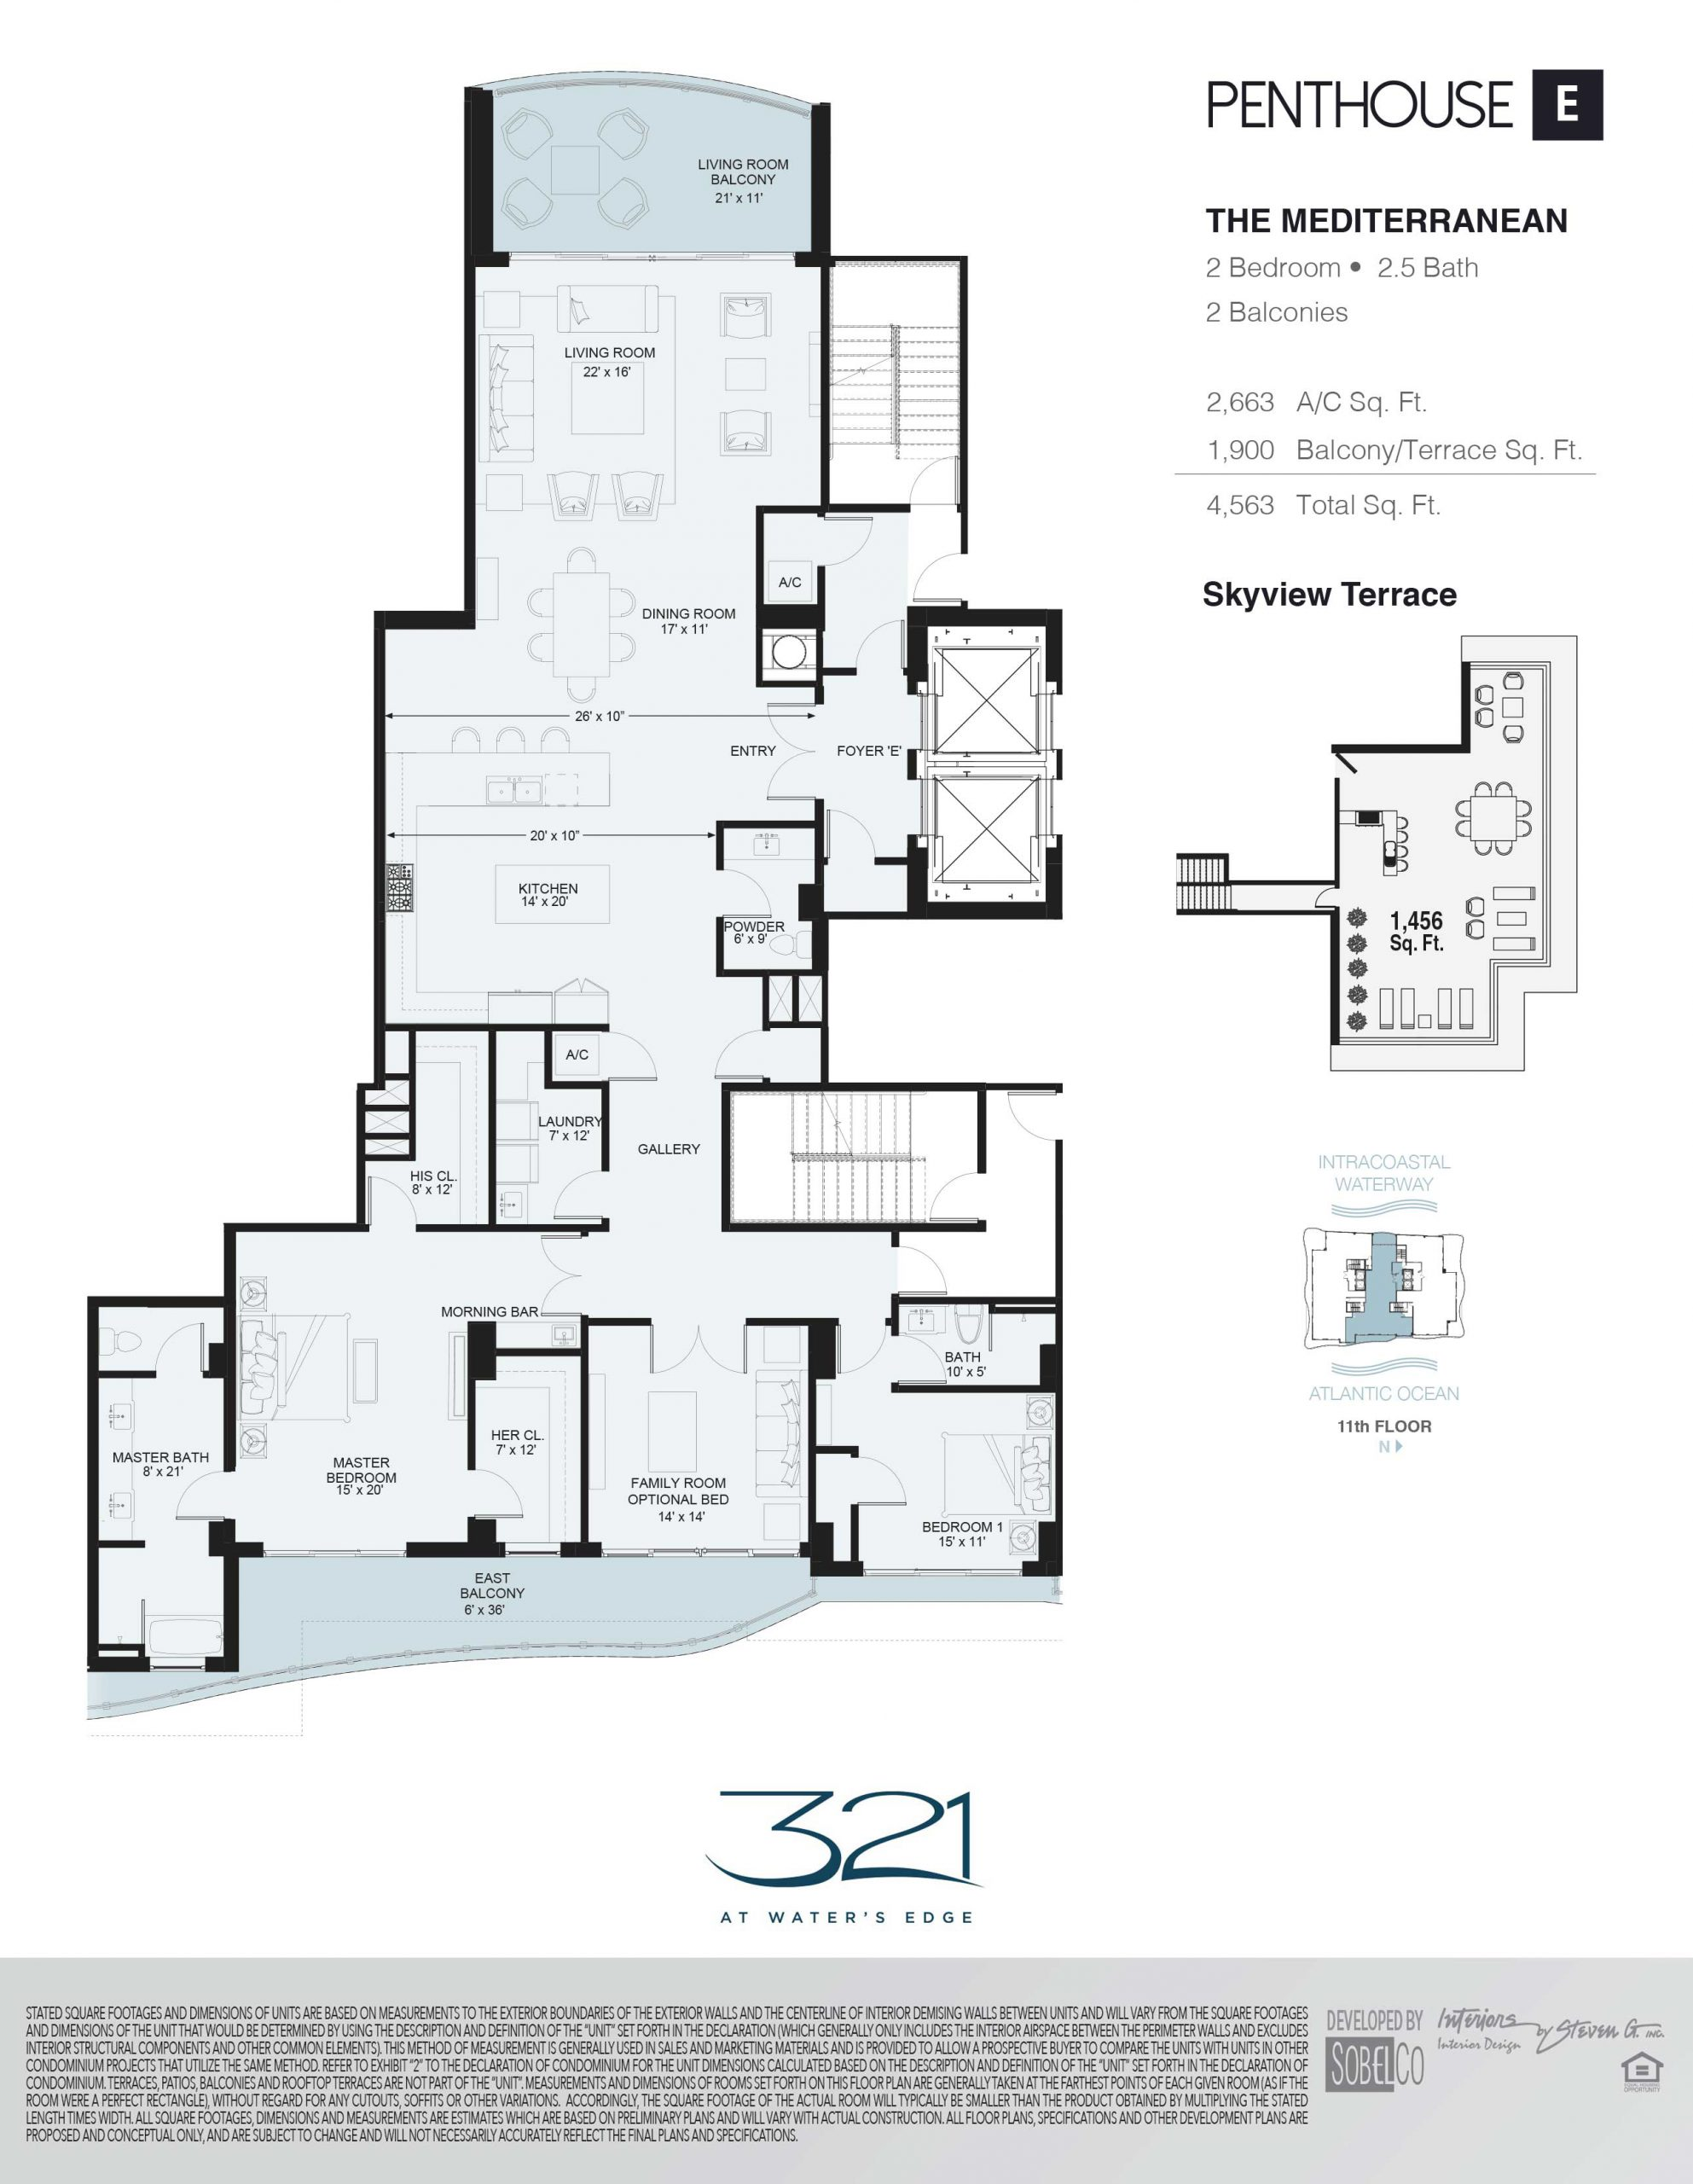 321 At Waters Edge Floor Plans Unit E